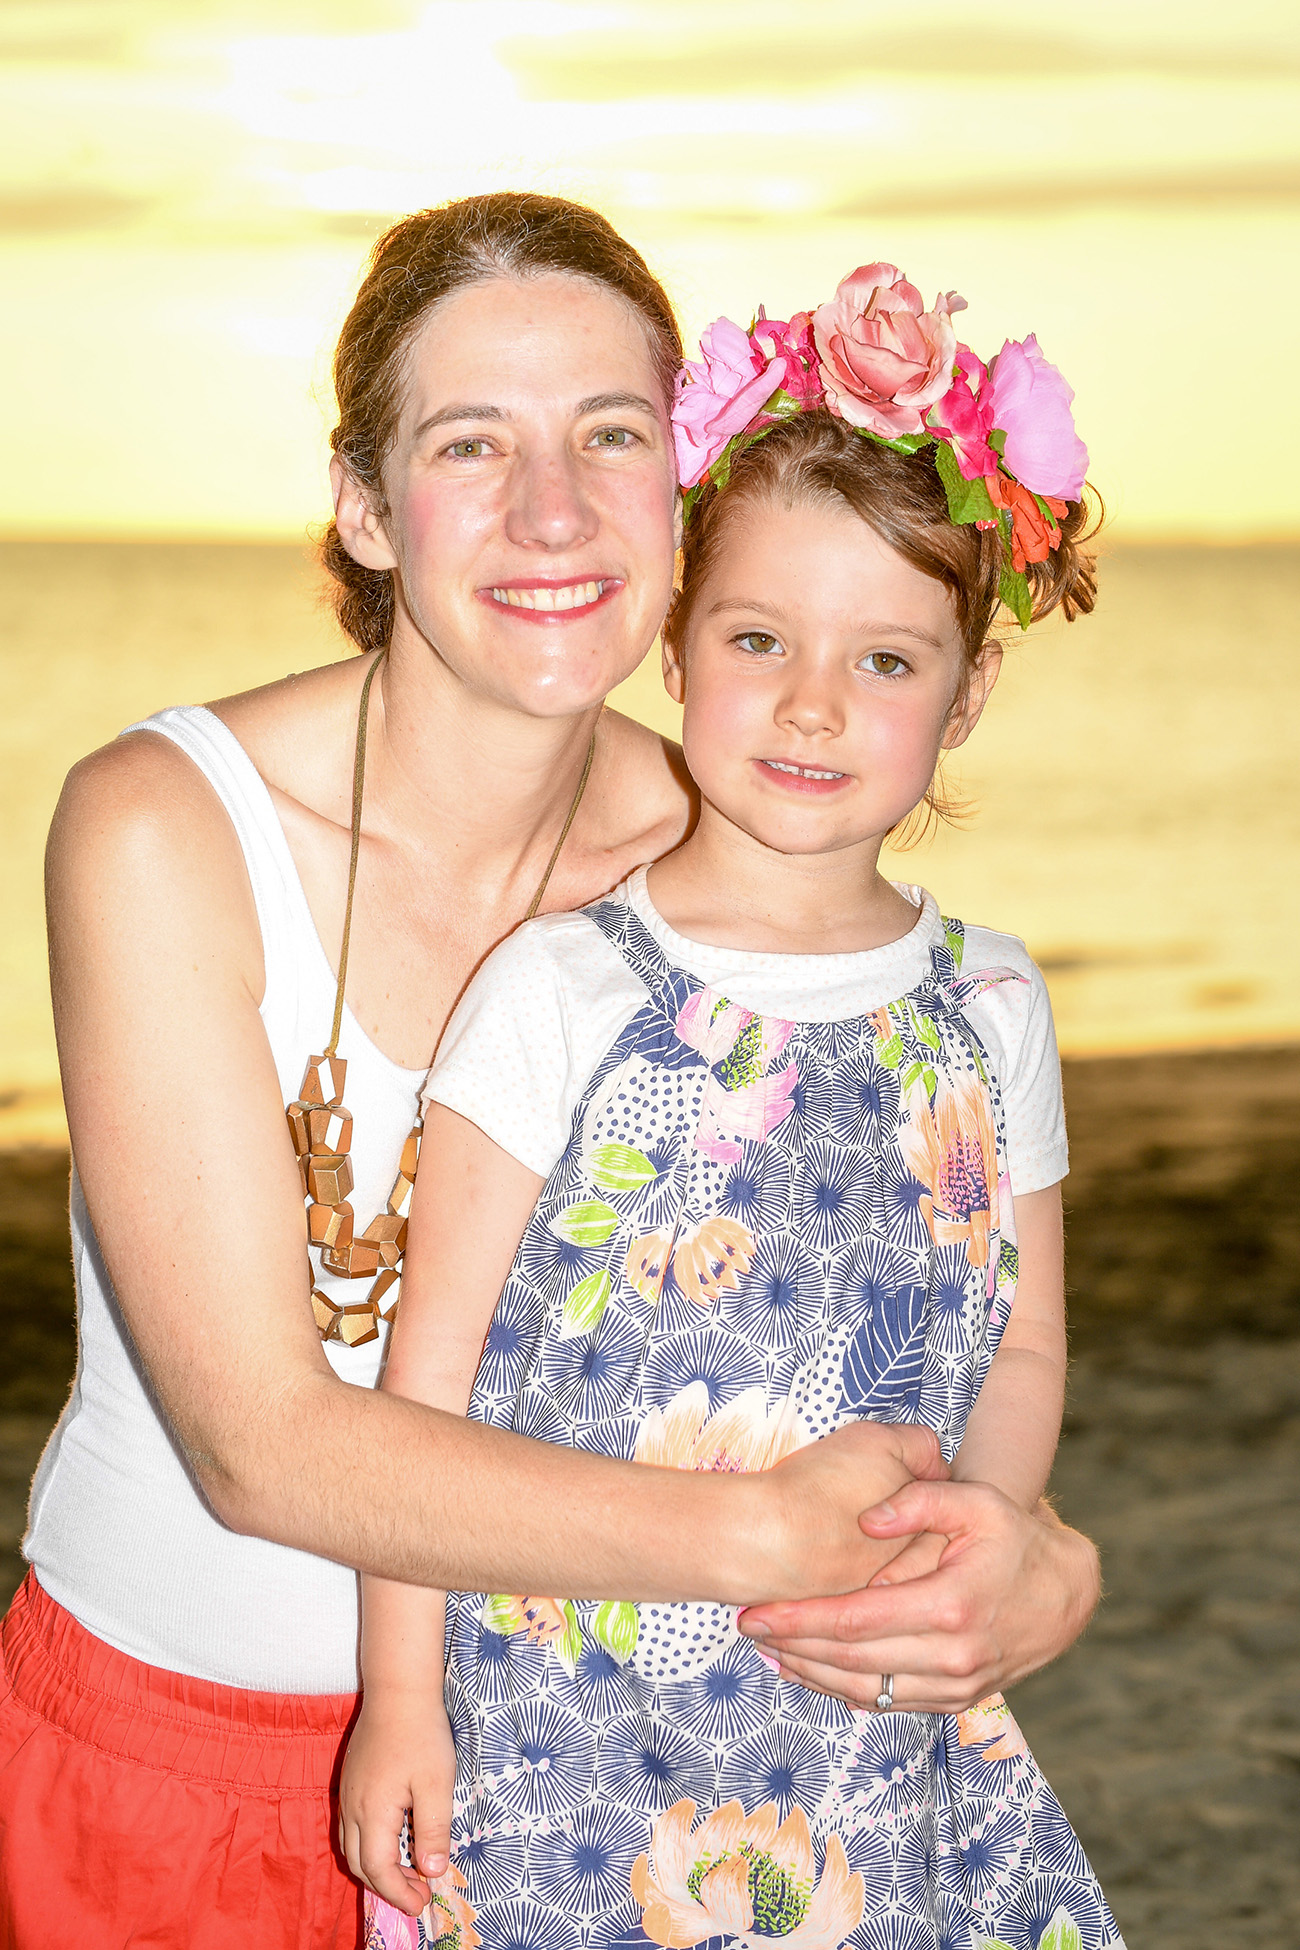 A mother hugs her daughter wearing a flower crown